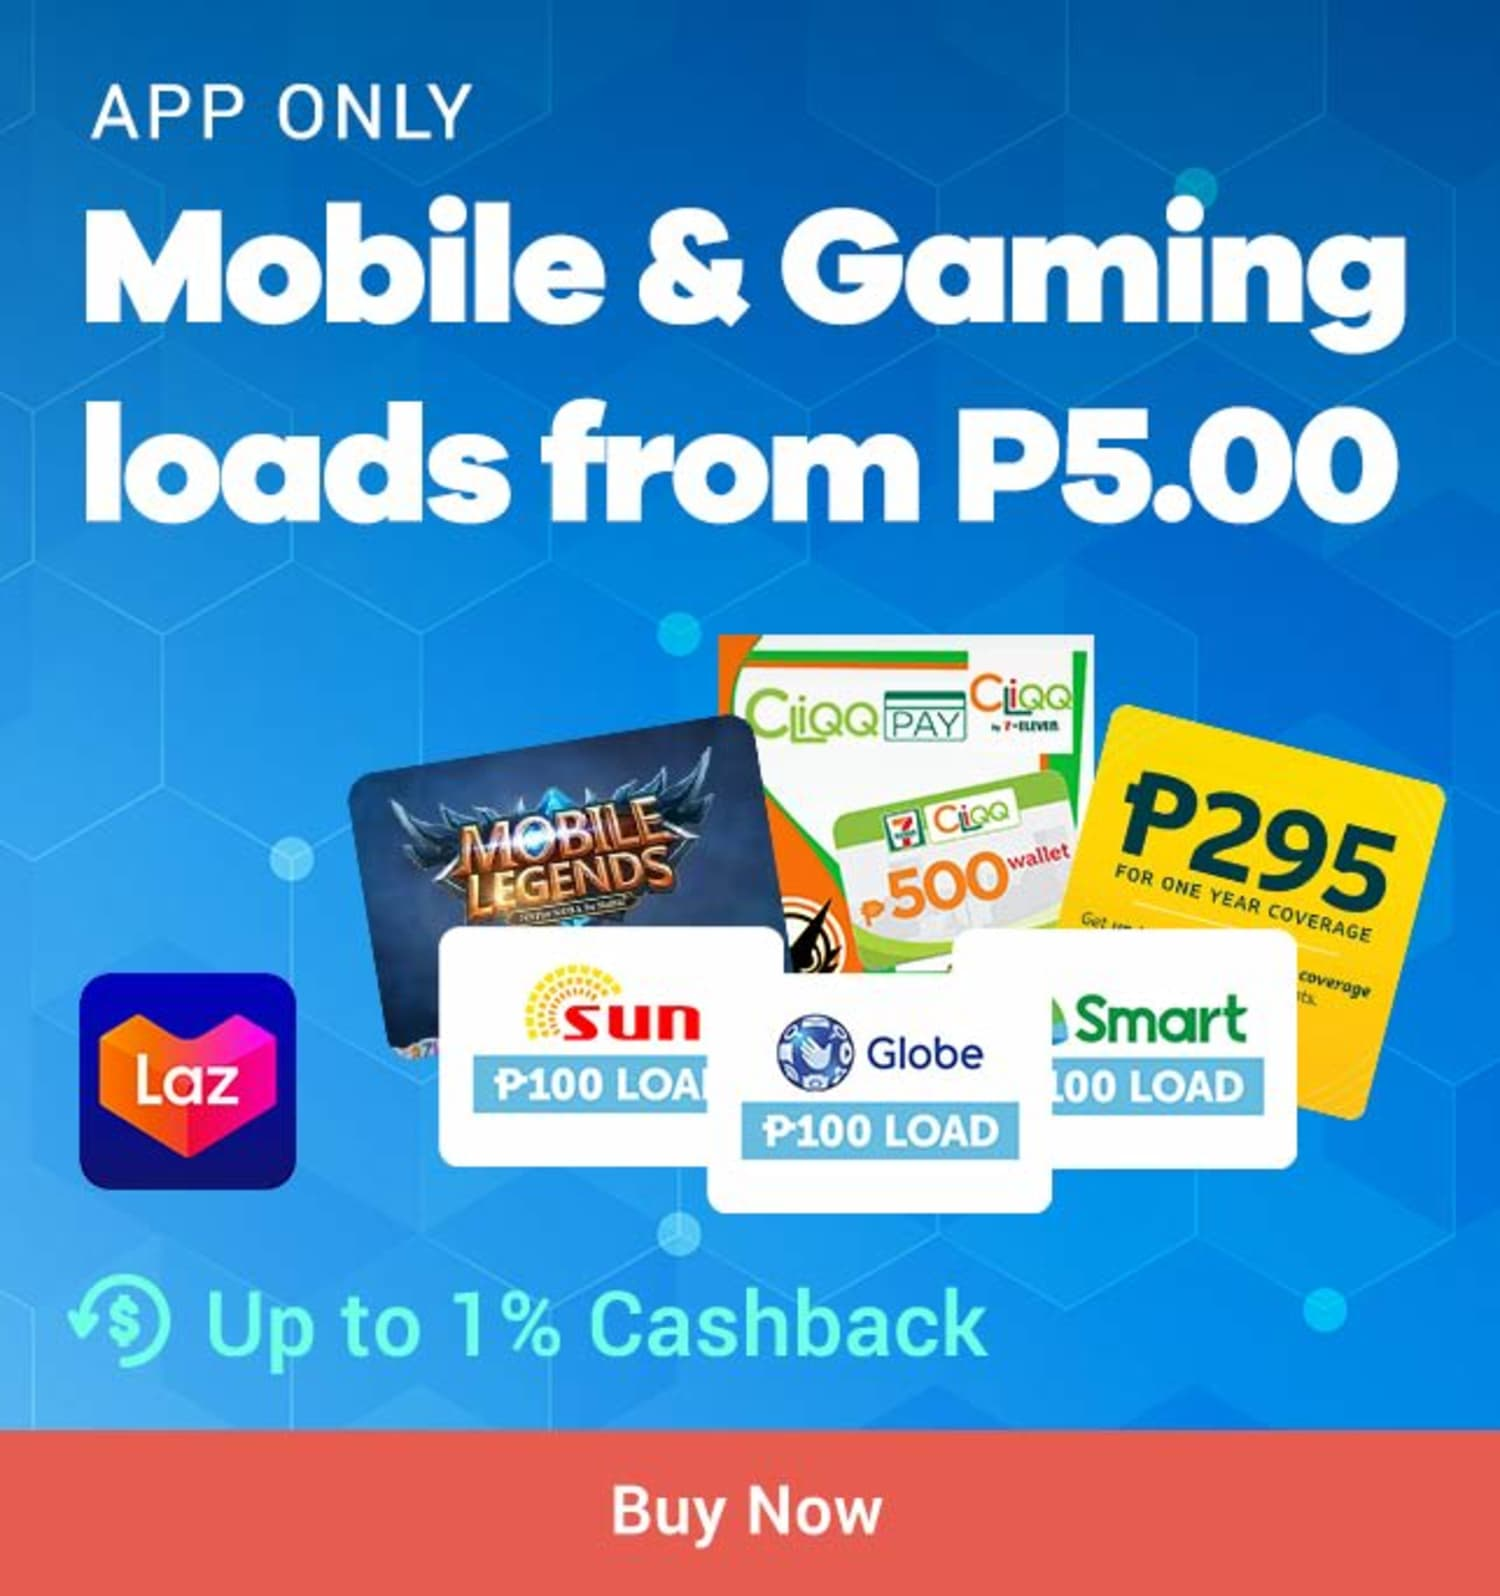 Lazada: Mobile & Gaming loads from P5